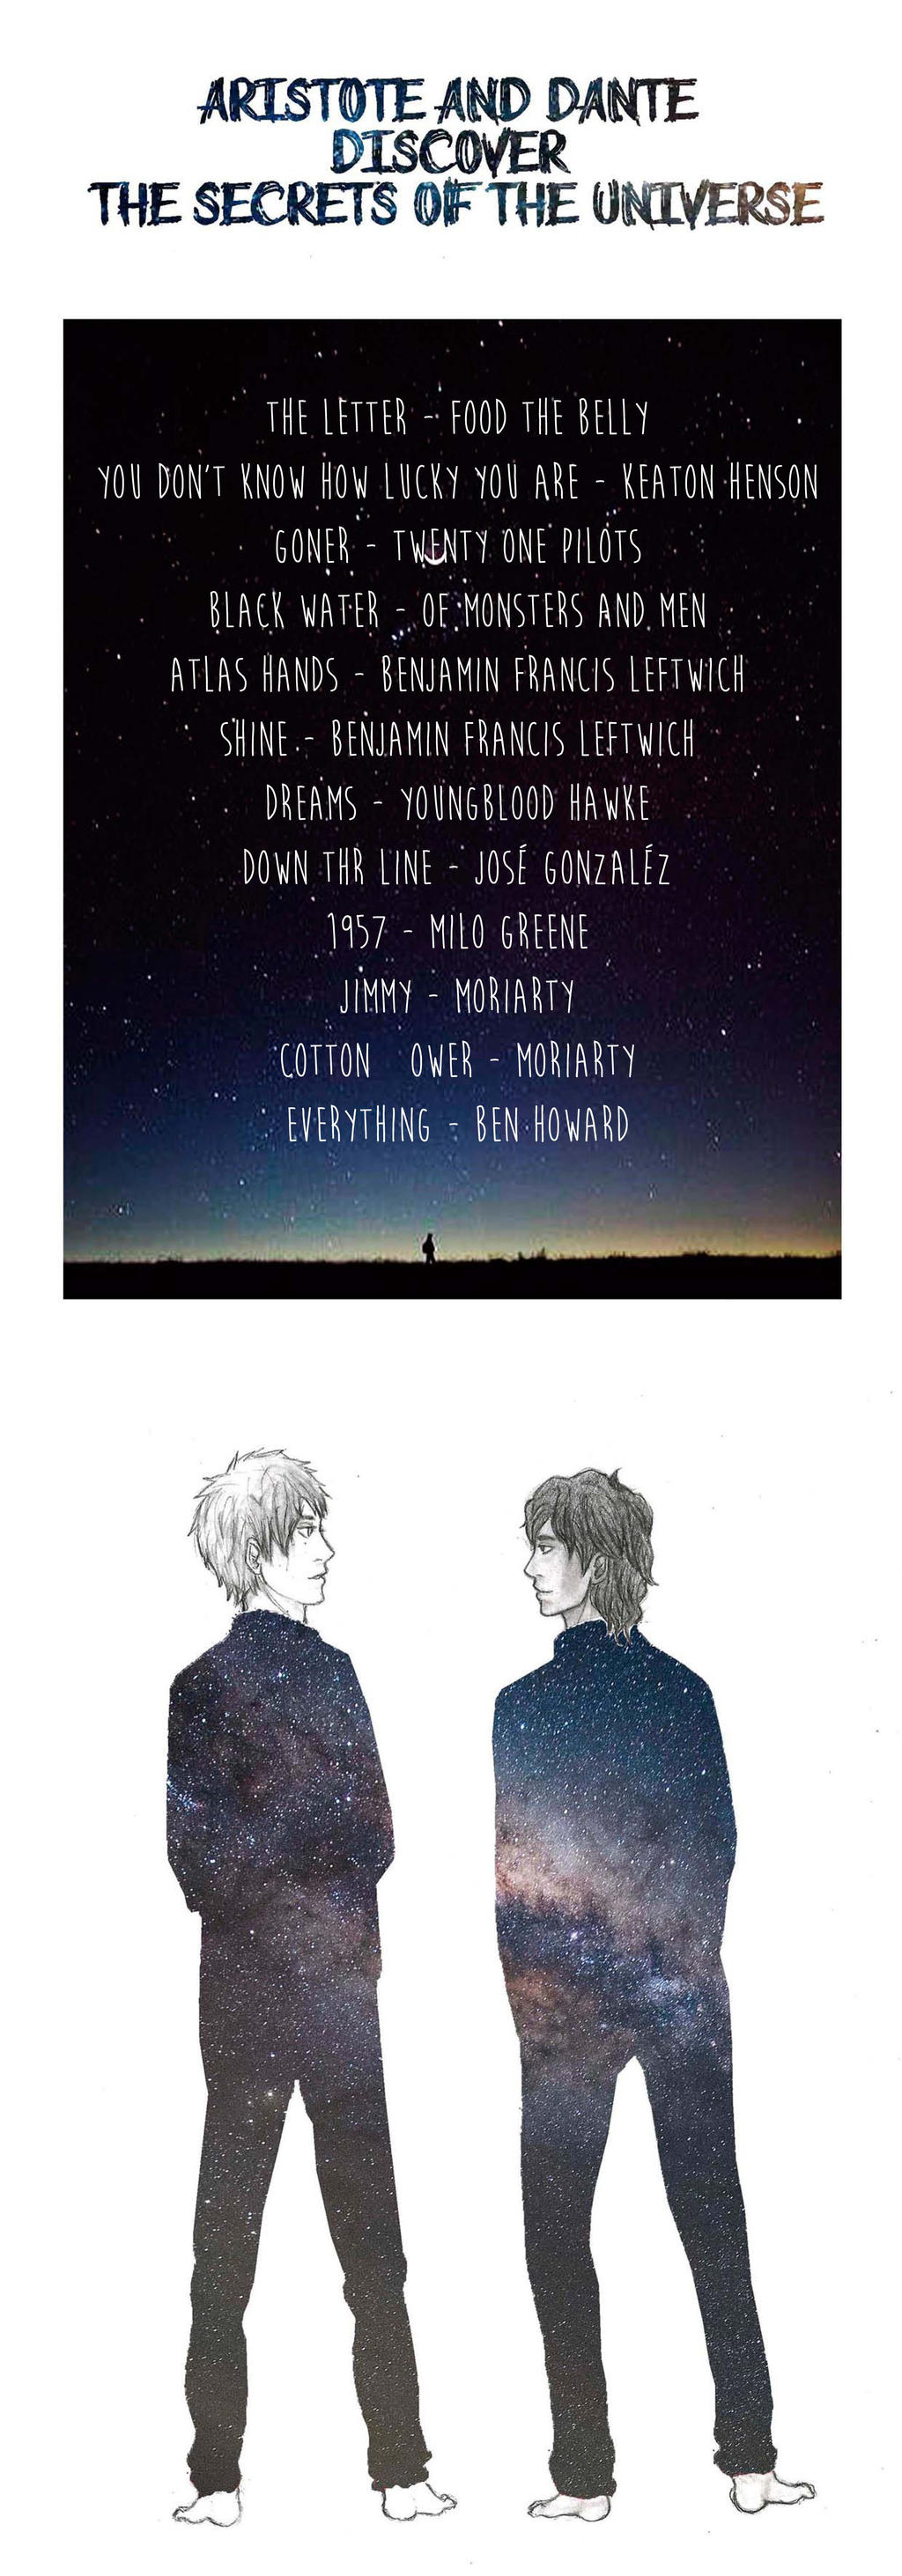 Aristotle and Dante by Shivean on DeviantArt